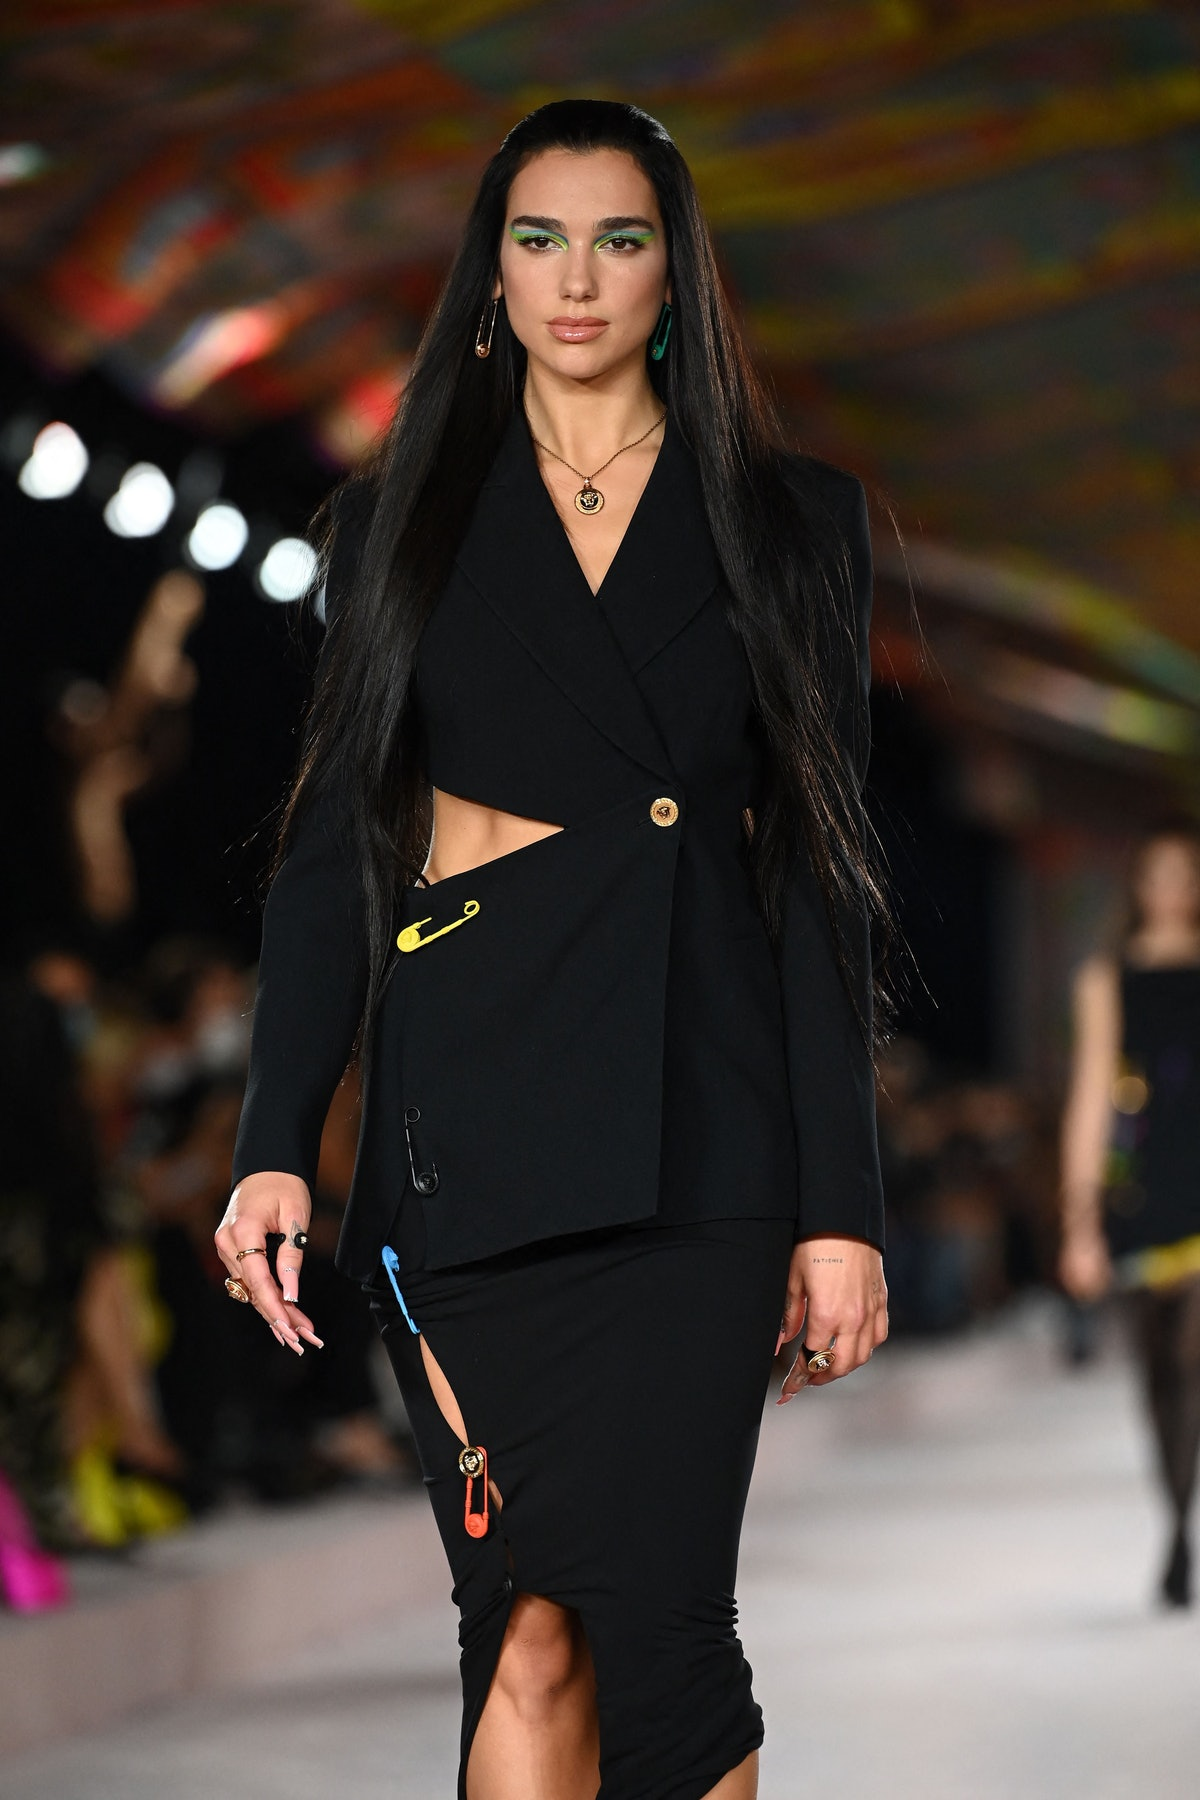 Dua Lipa Makes Her Runway Debut at Versace in a Safety Pin Dress